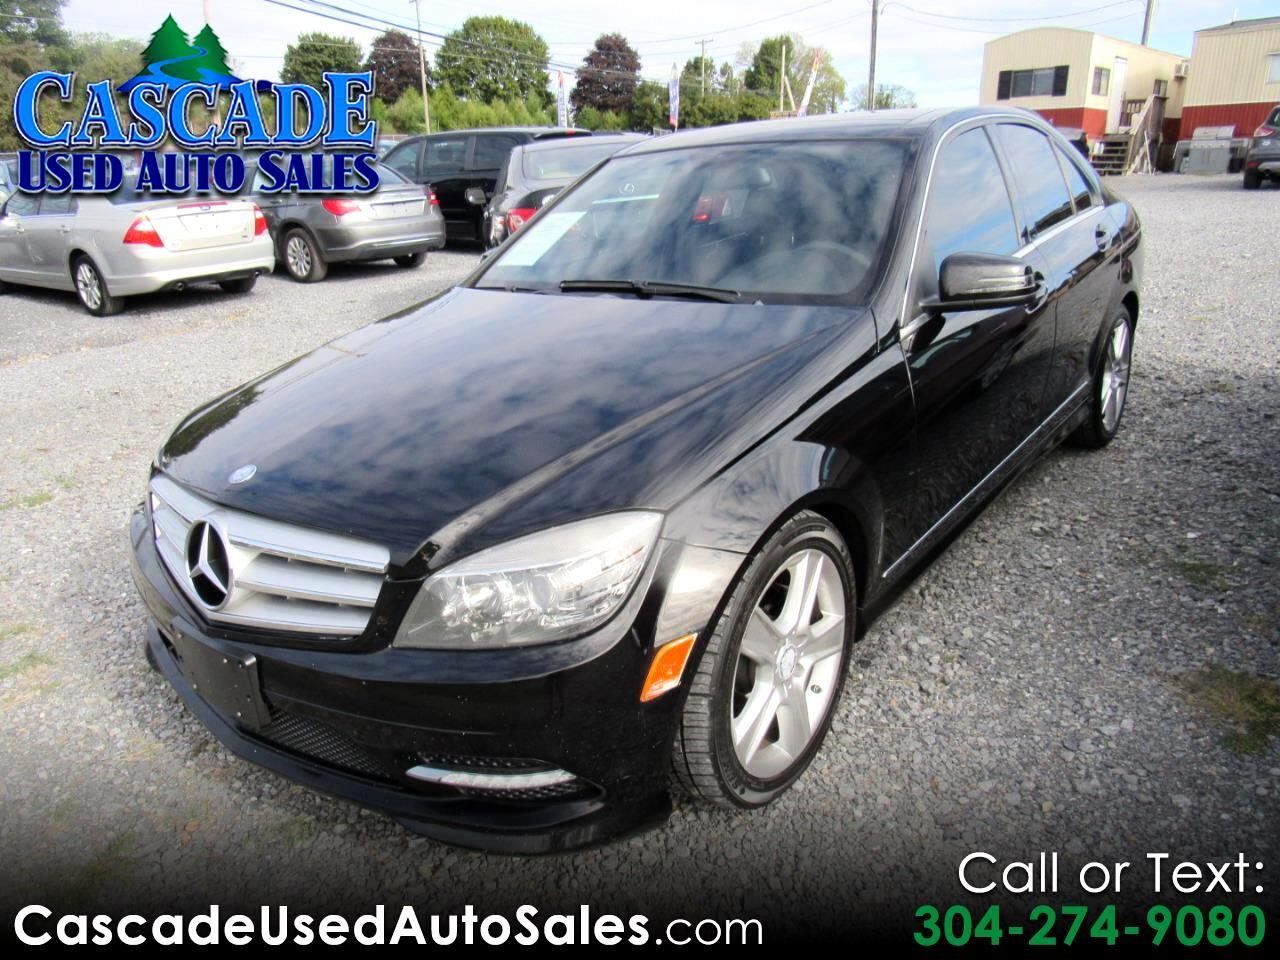 2011 Mercedes-Benz C-Class 4dr Luxury Sdn 3.0L 4MATIC